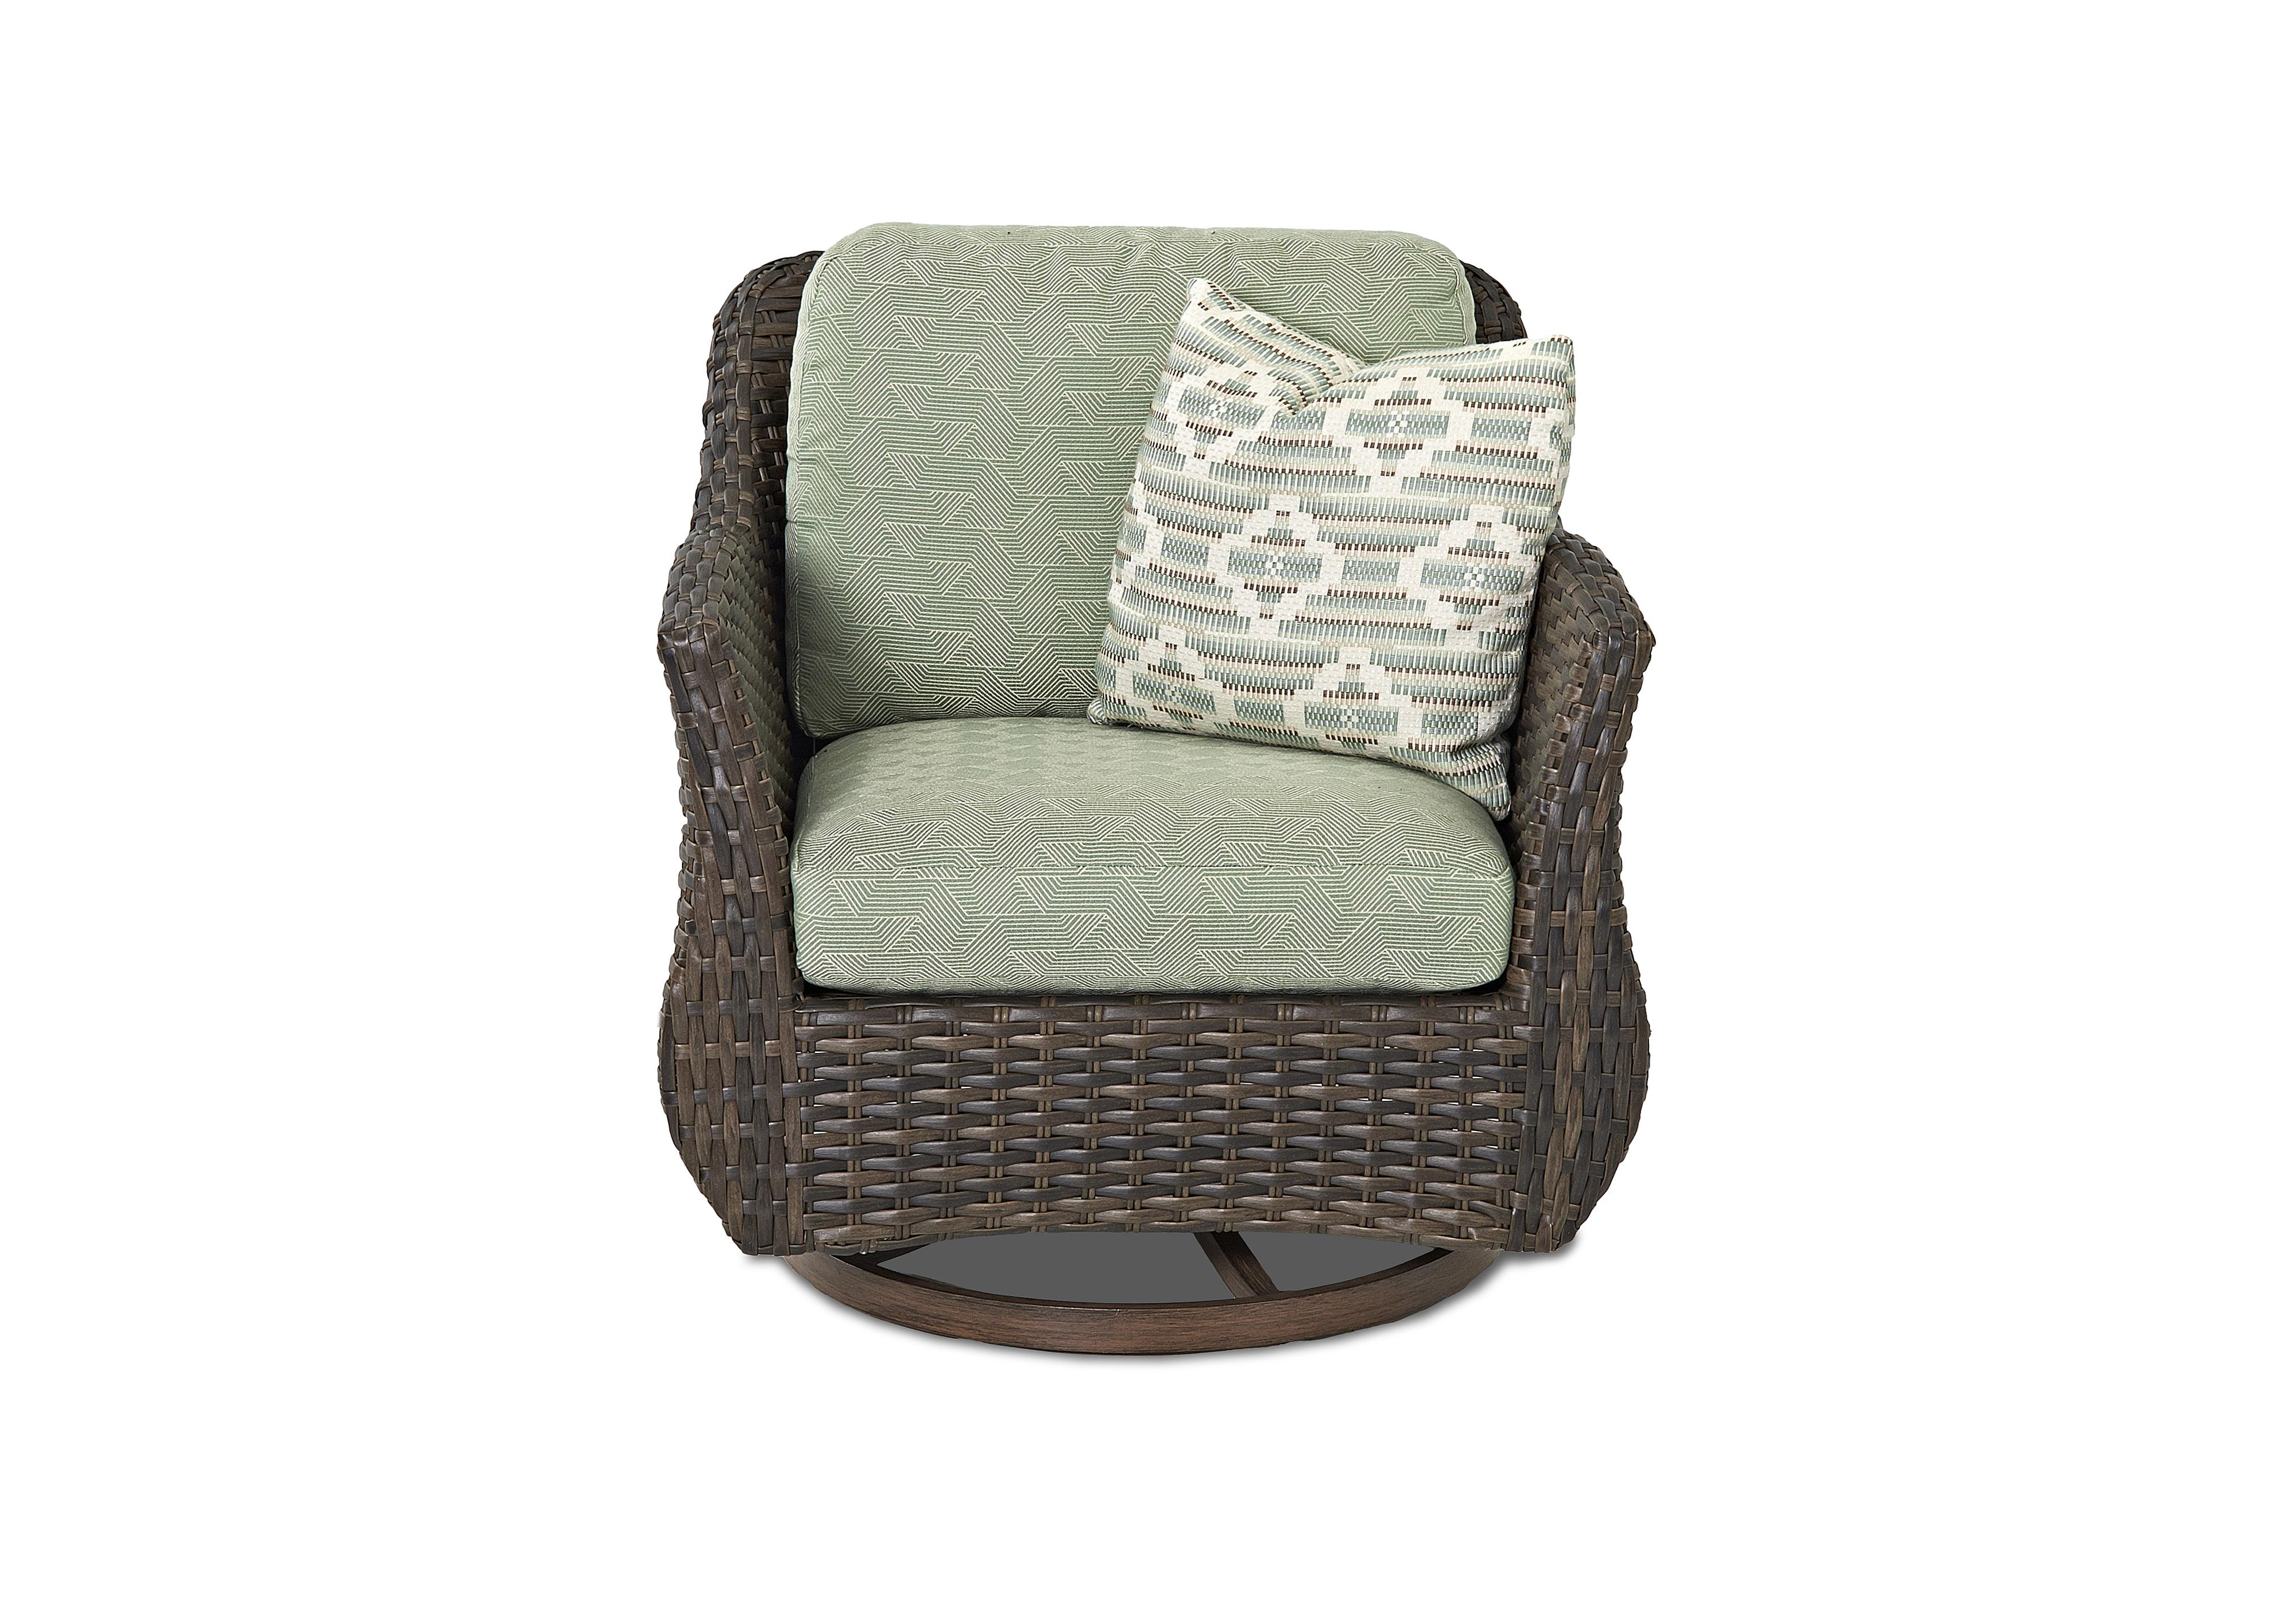 Sycamore Outdoor Swivel Glider Chair by Klaussner Outdoor at Nassau Furniture and Mattress